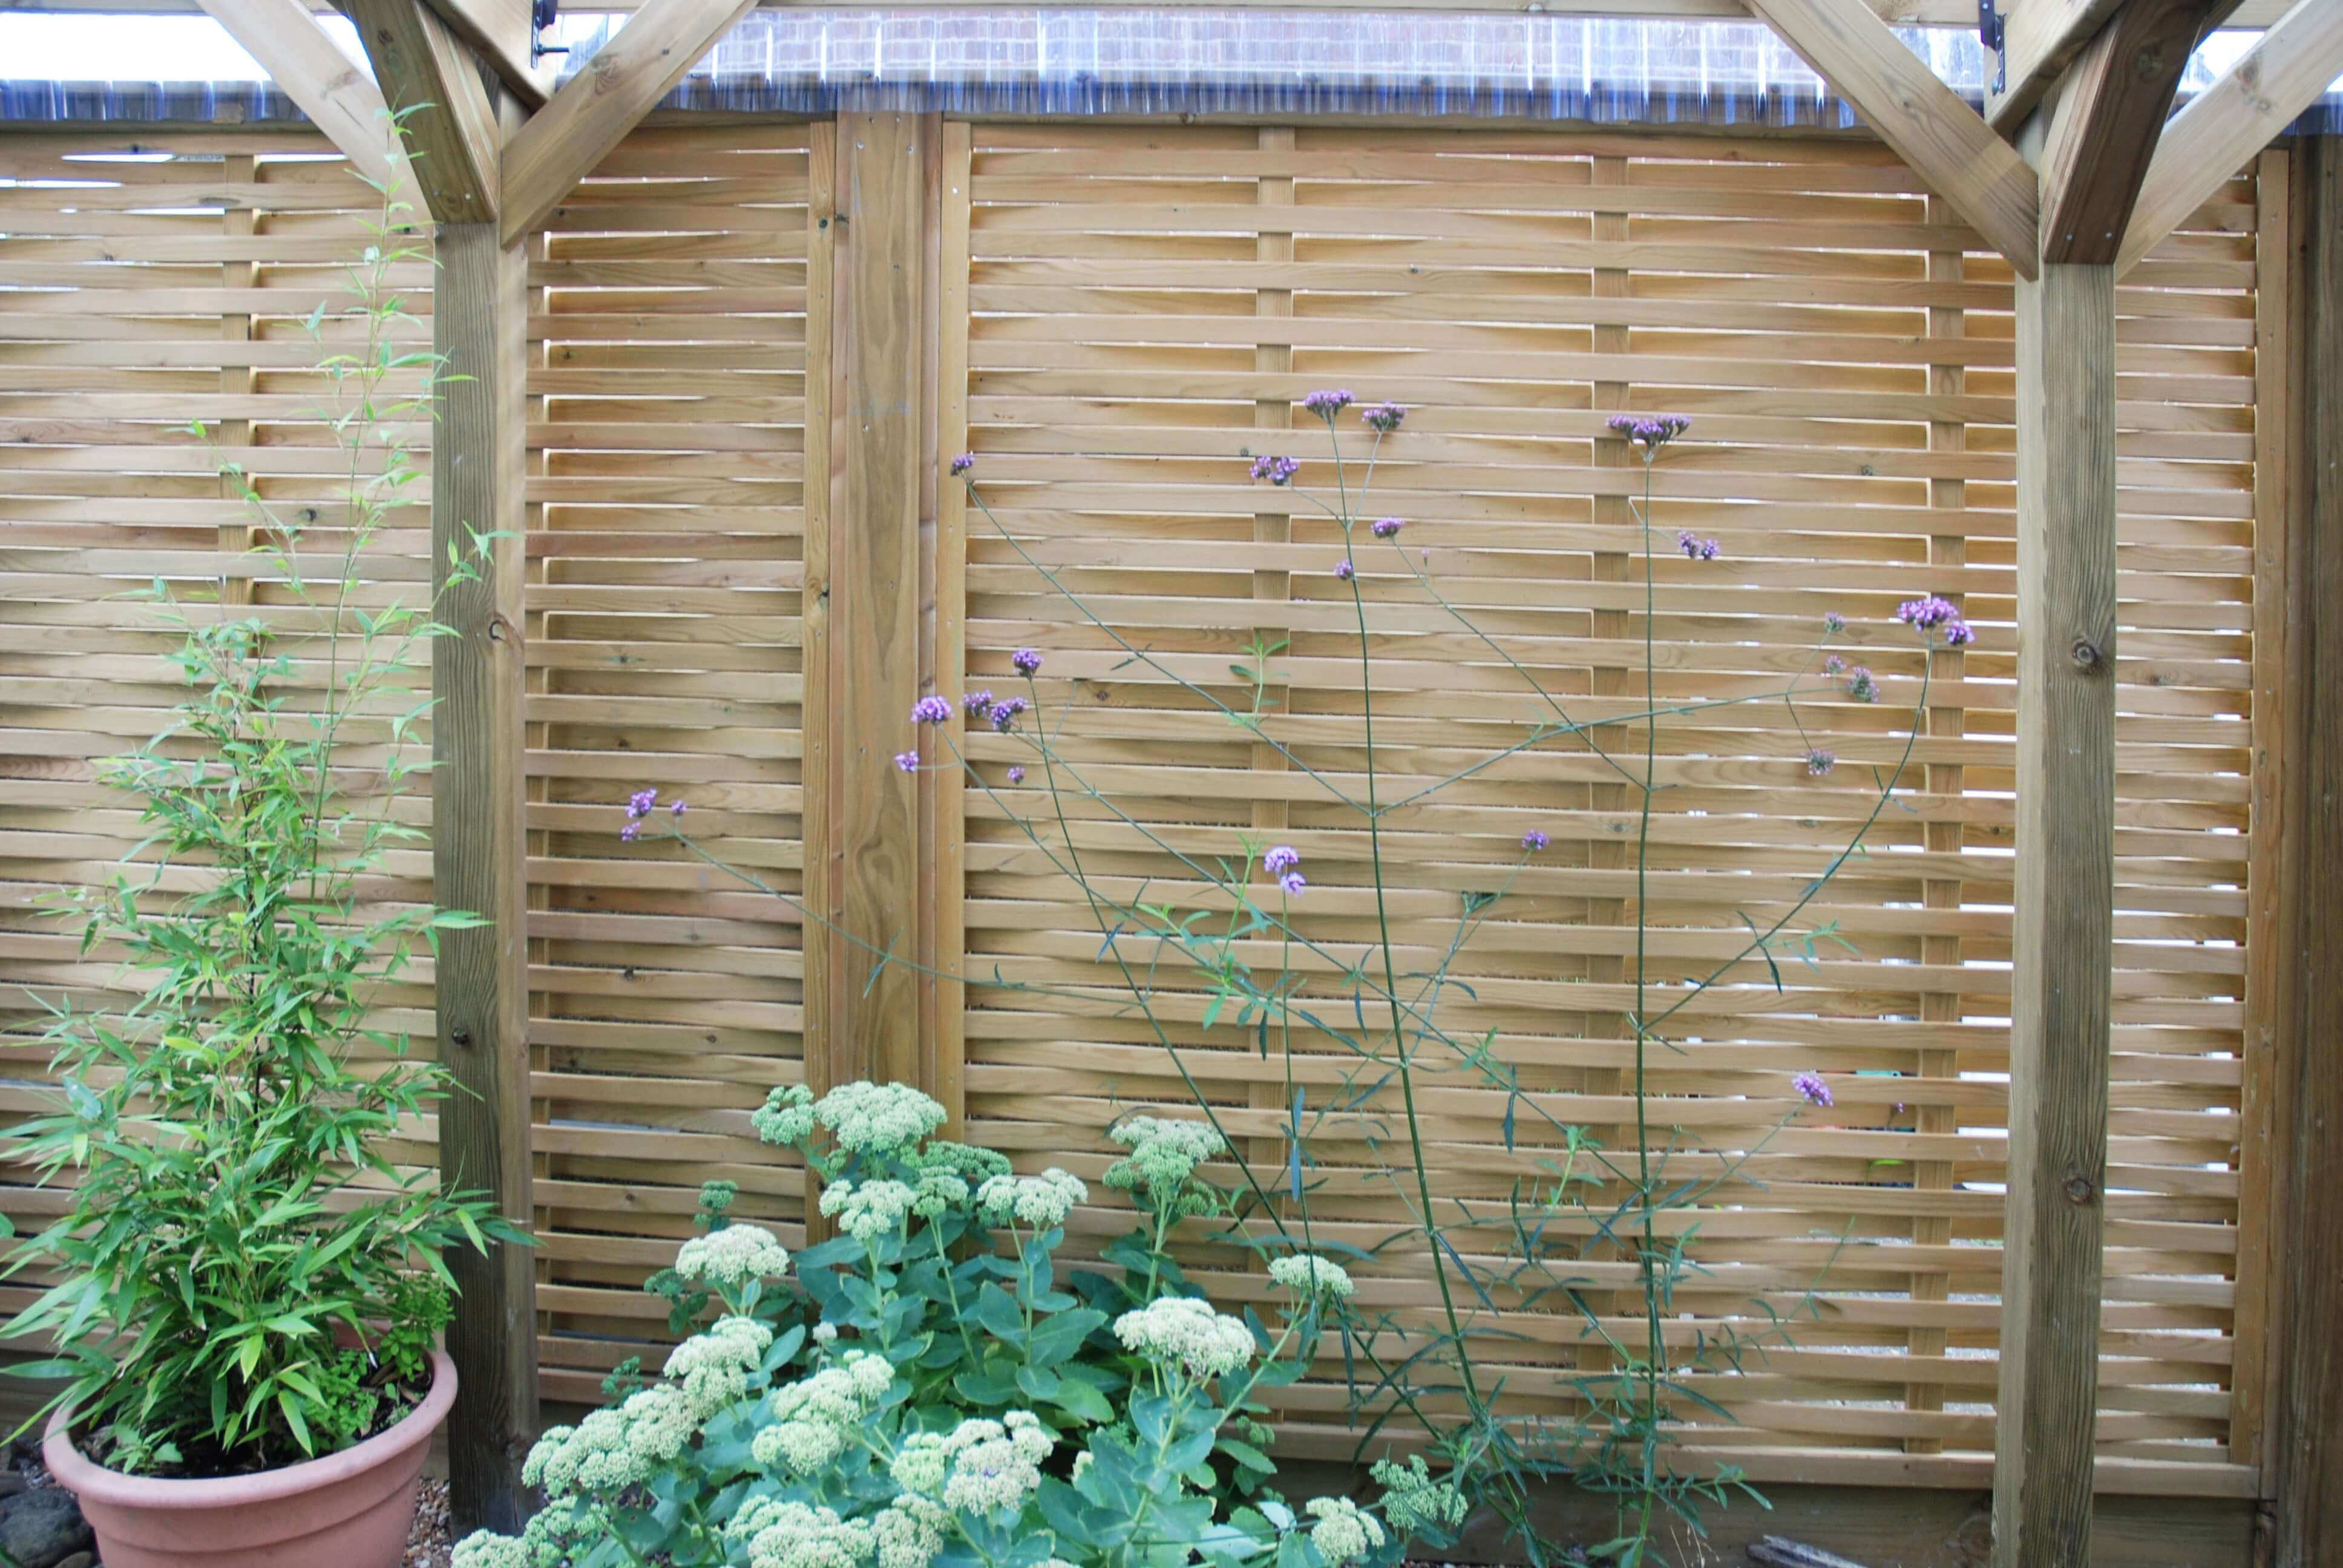 Woven fence panels along room side